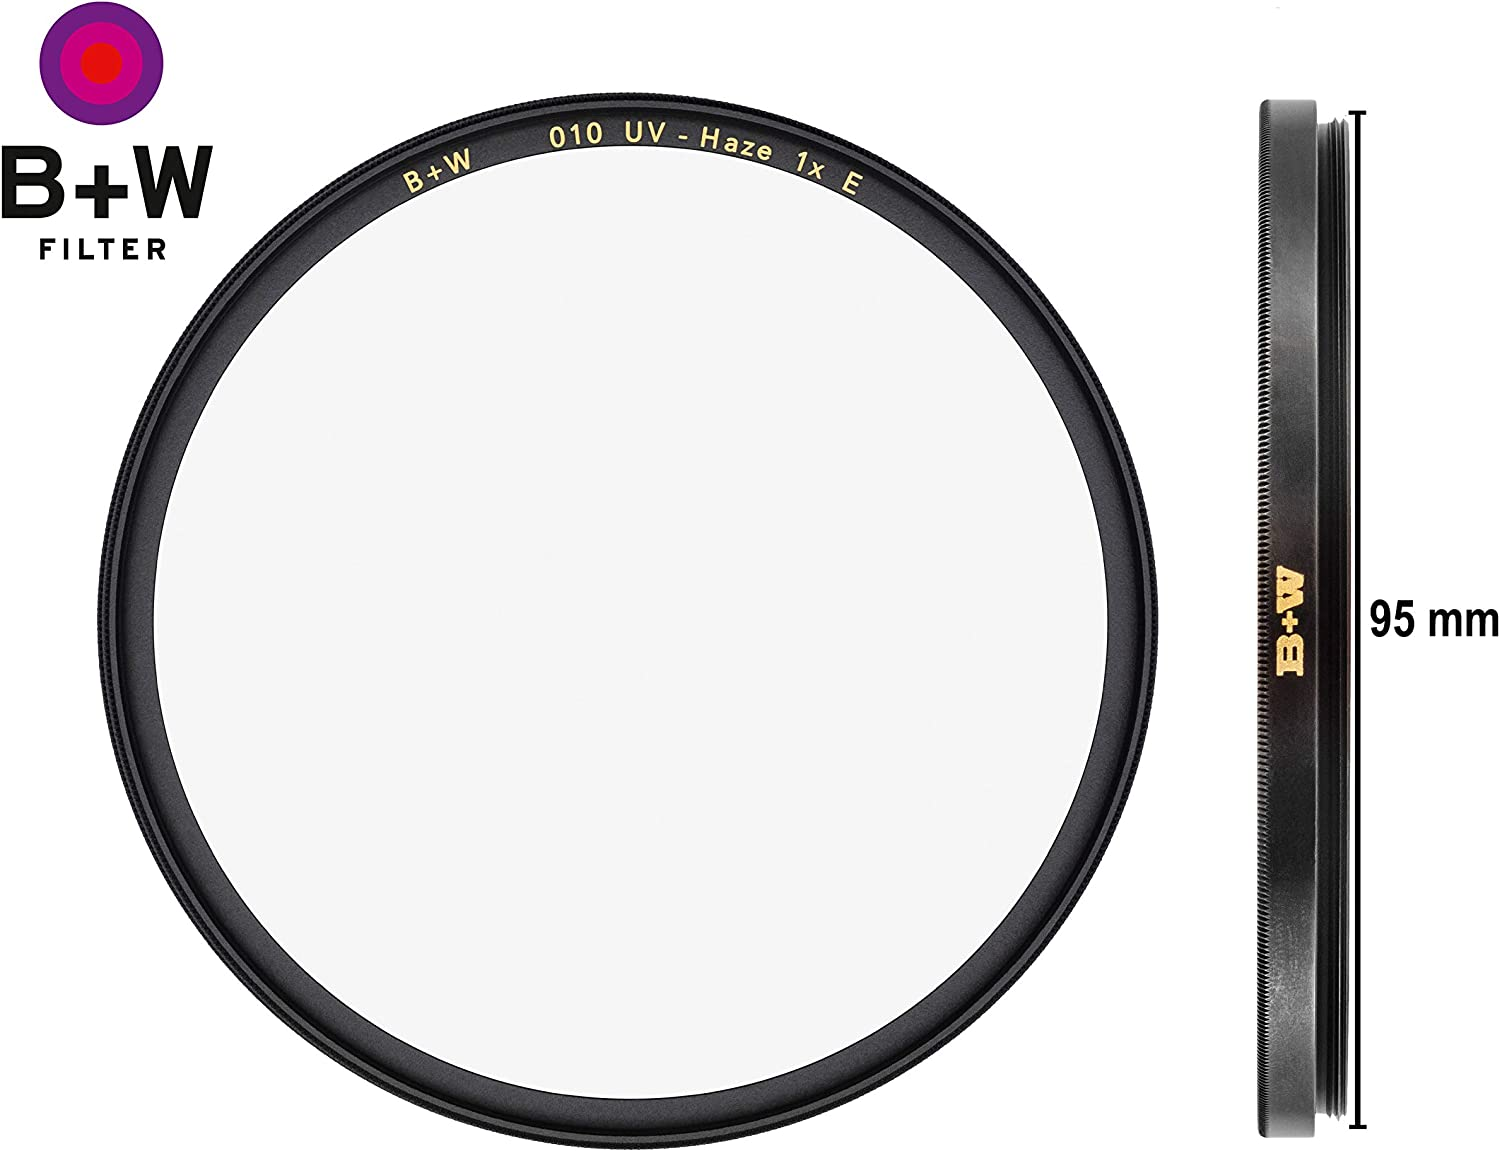 F-PRO Clear Protector MRC Standard Mount 16 Layers Multi-Resistant Coating W 37mm UV Protection Filter Photography Filter for Camera Lens 37 mm 010 B